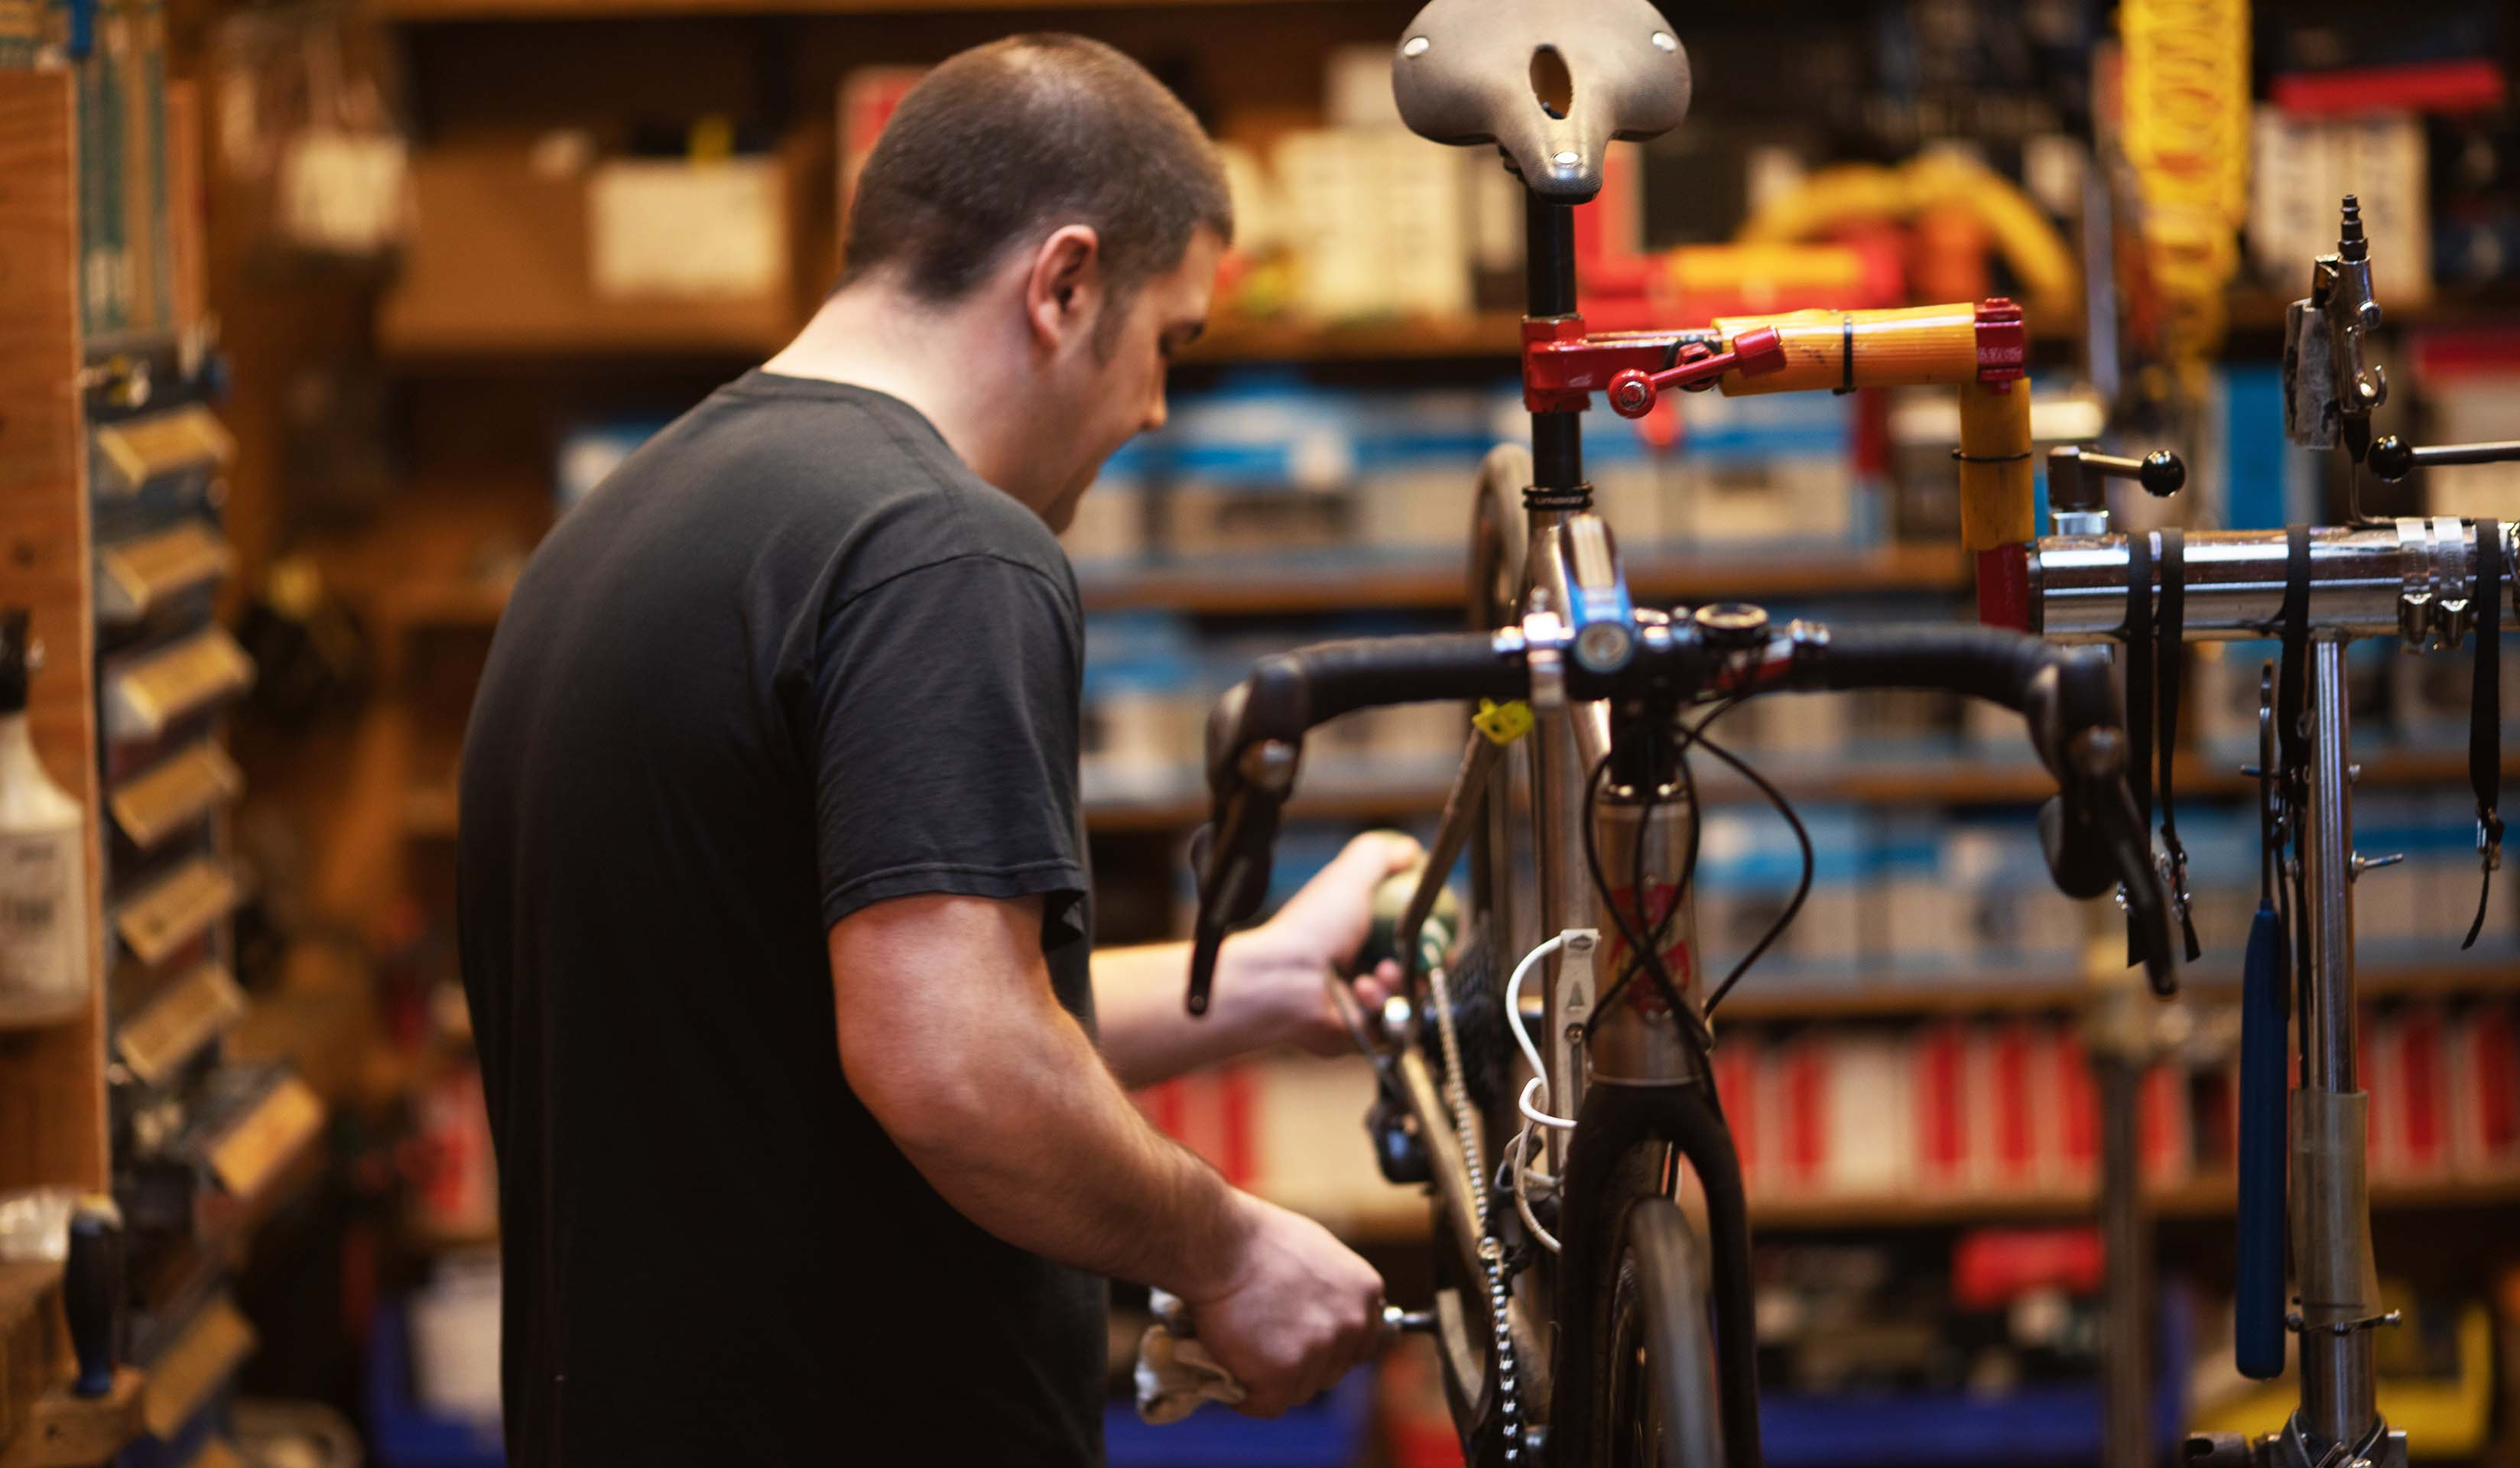 Montlake Bicycle Shop employee lubing chain on a Lynskey road bike.